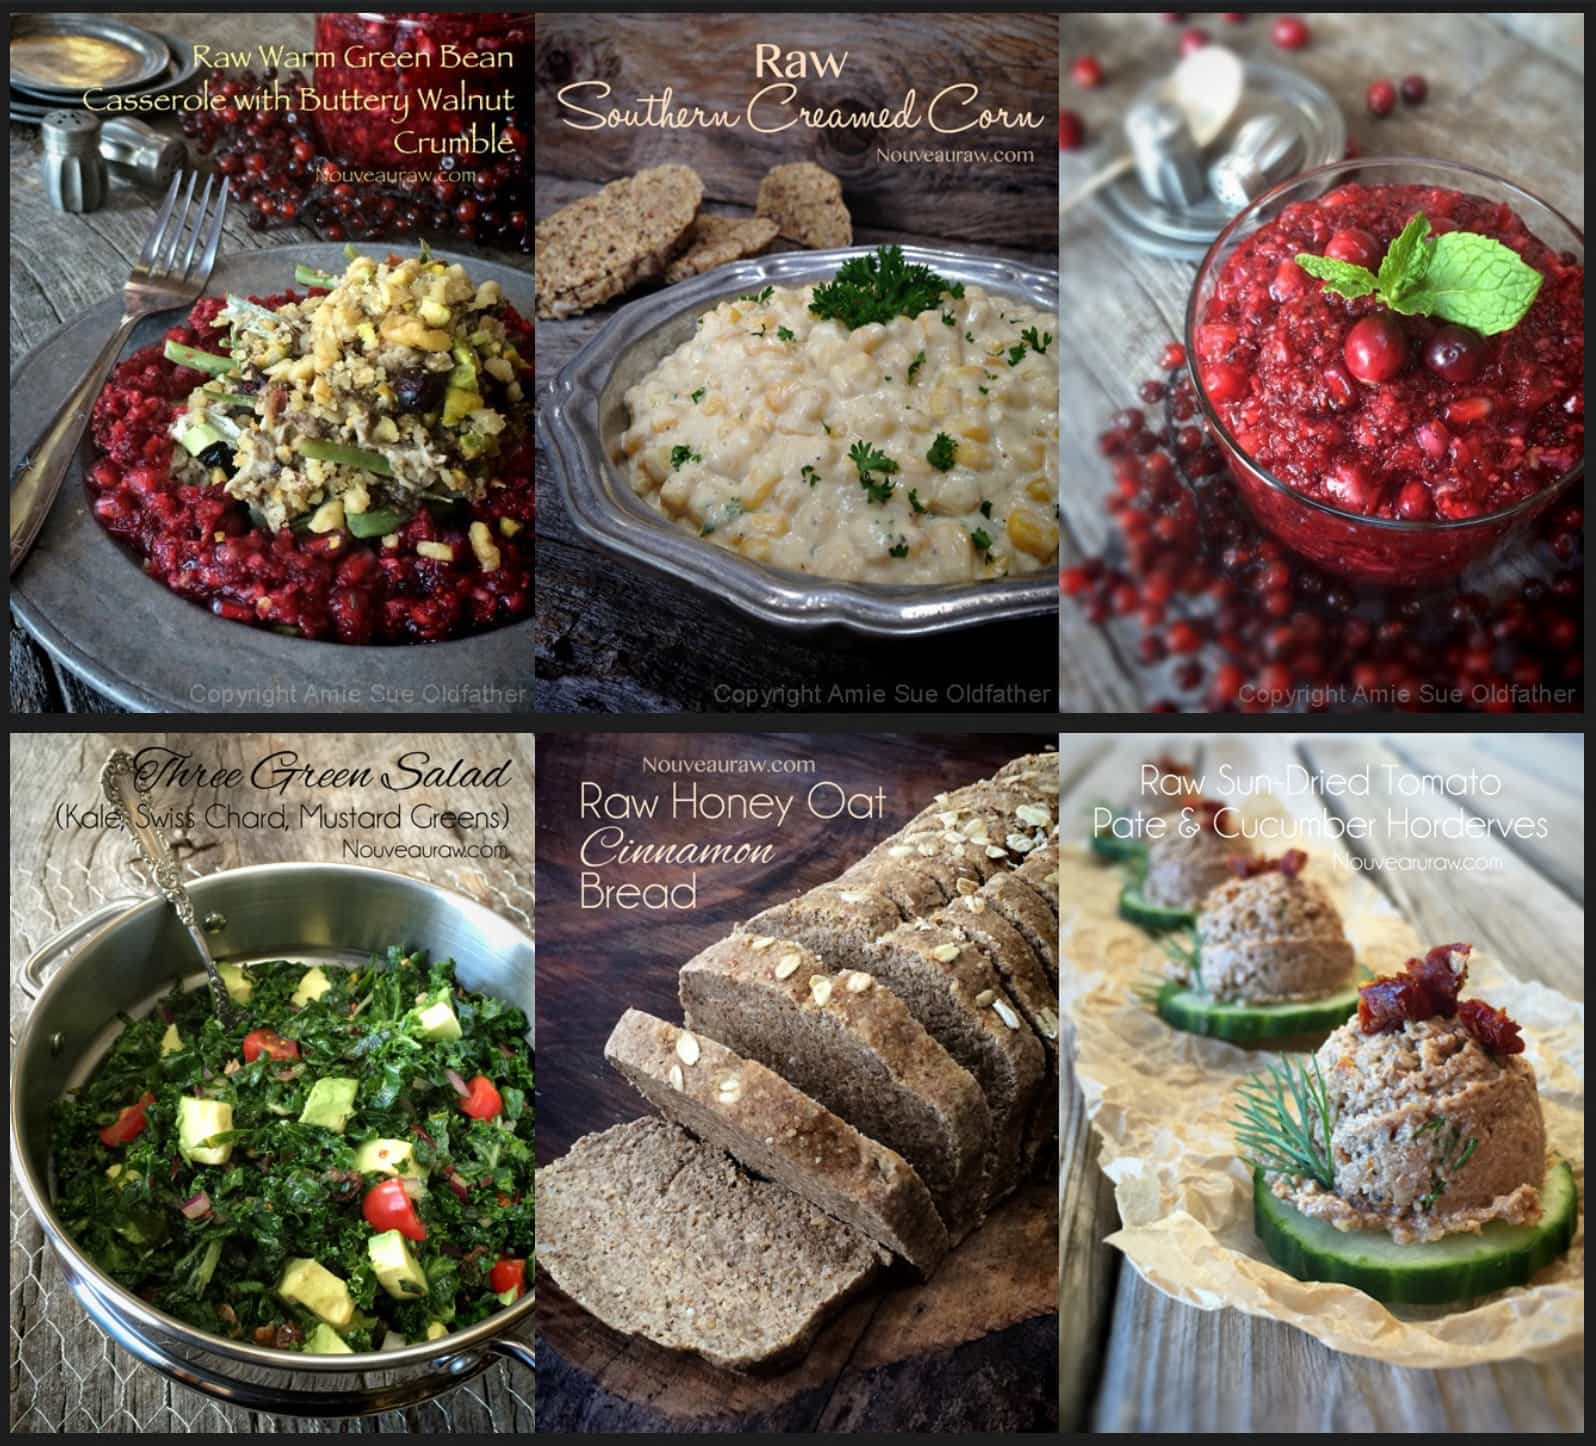 Raw Menu Ideas for the Holidays from Nouveau Raw